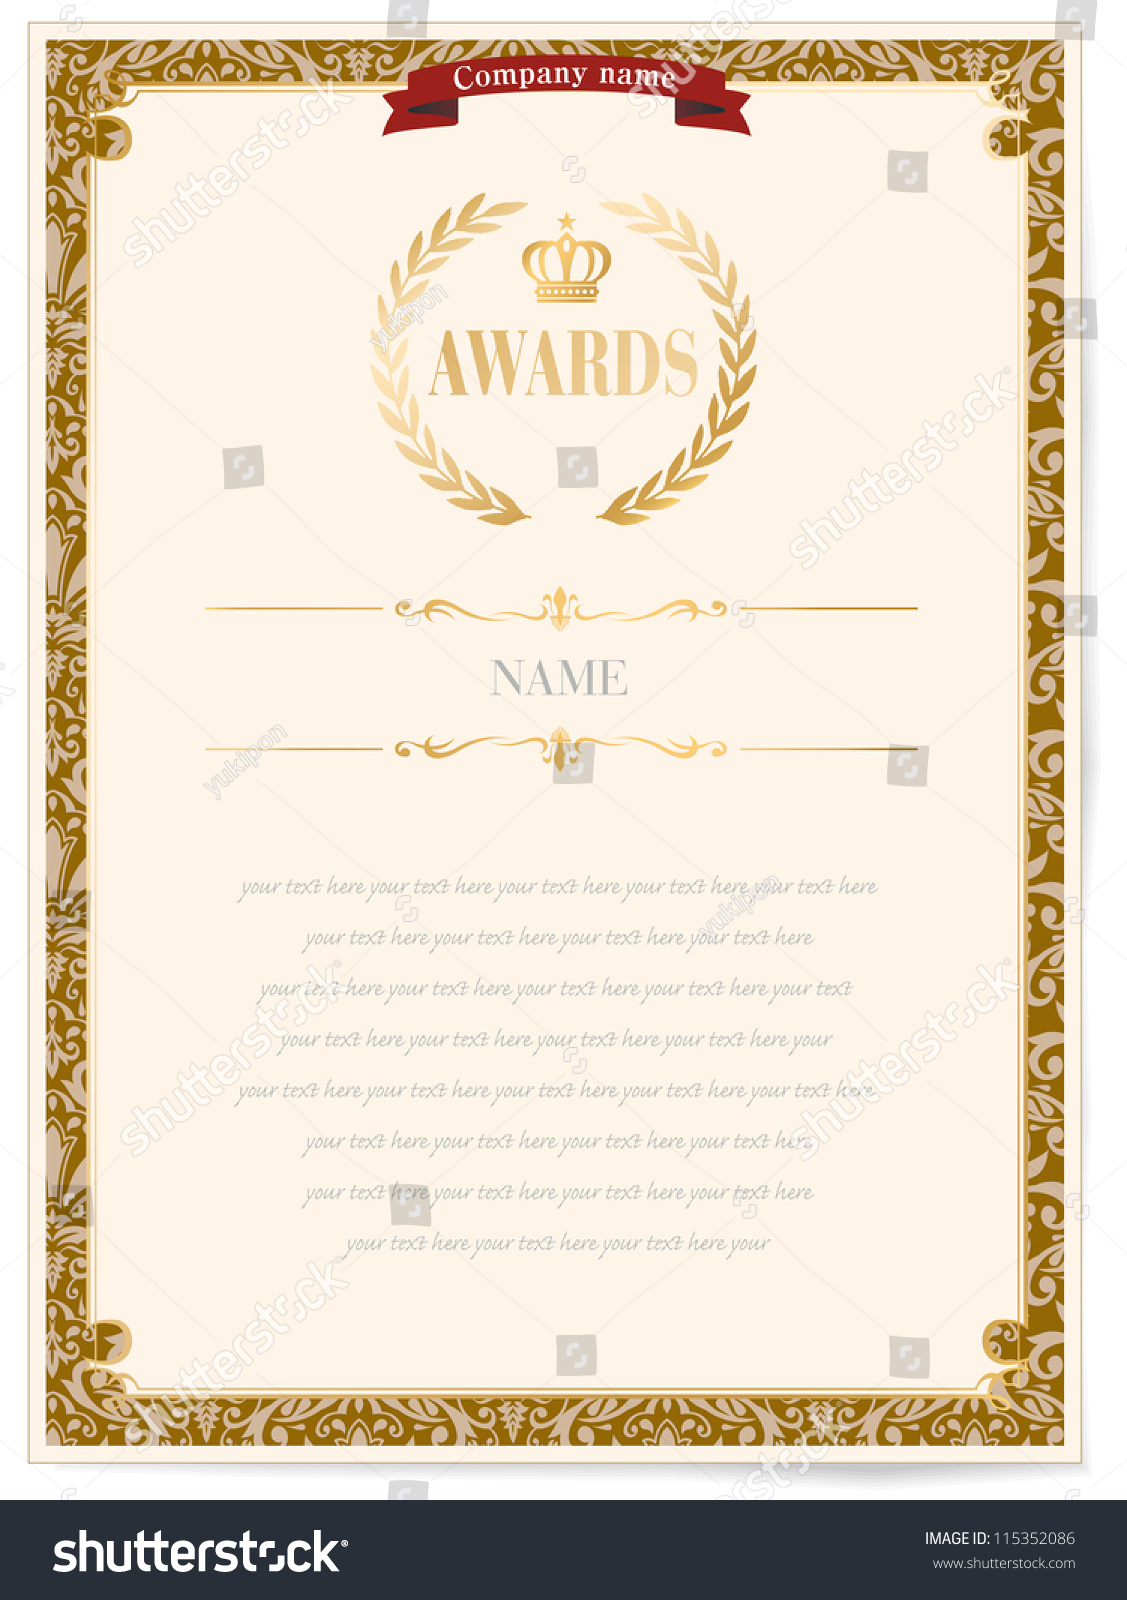 Illustration certificate award excellence golden ribbon stock illustration of a certificate award of excellence with golden ribbon xflitez Choice Image